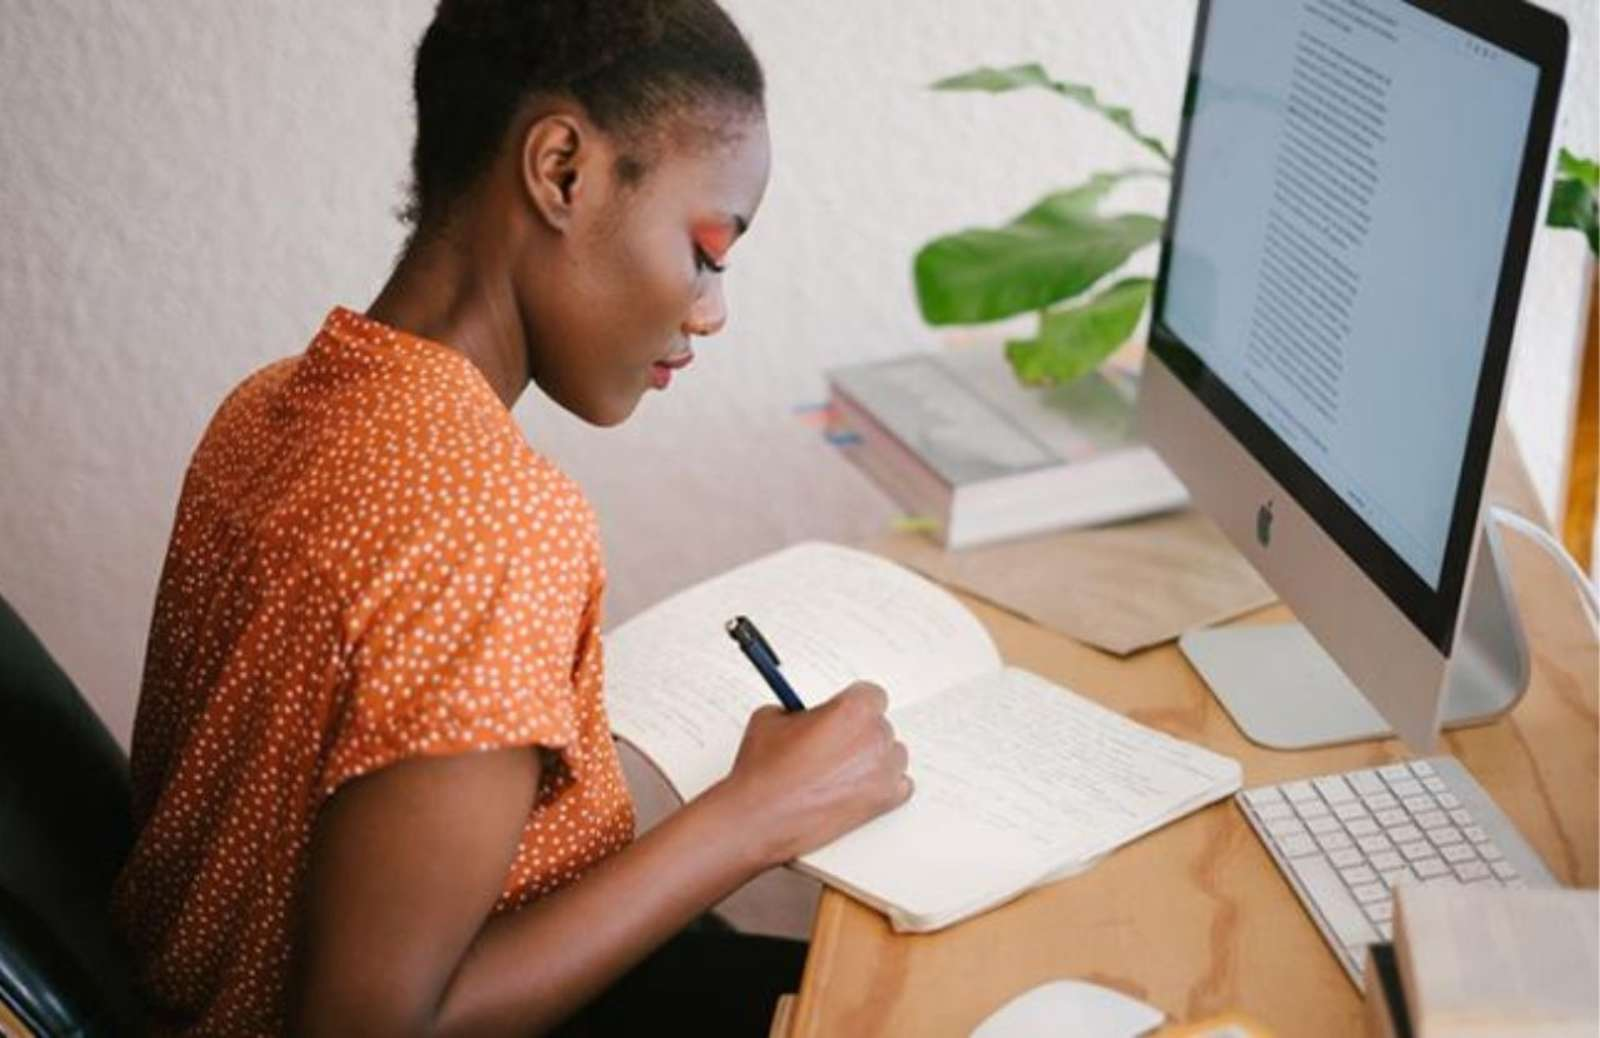 Woman taking notes at desk in front of computer screen